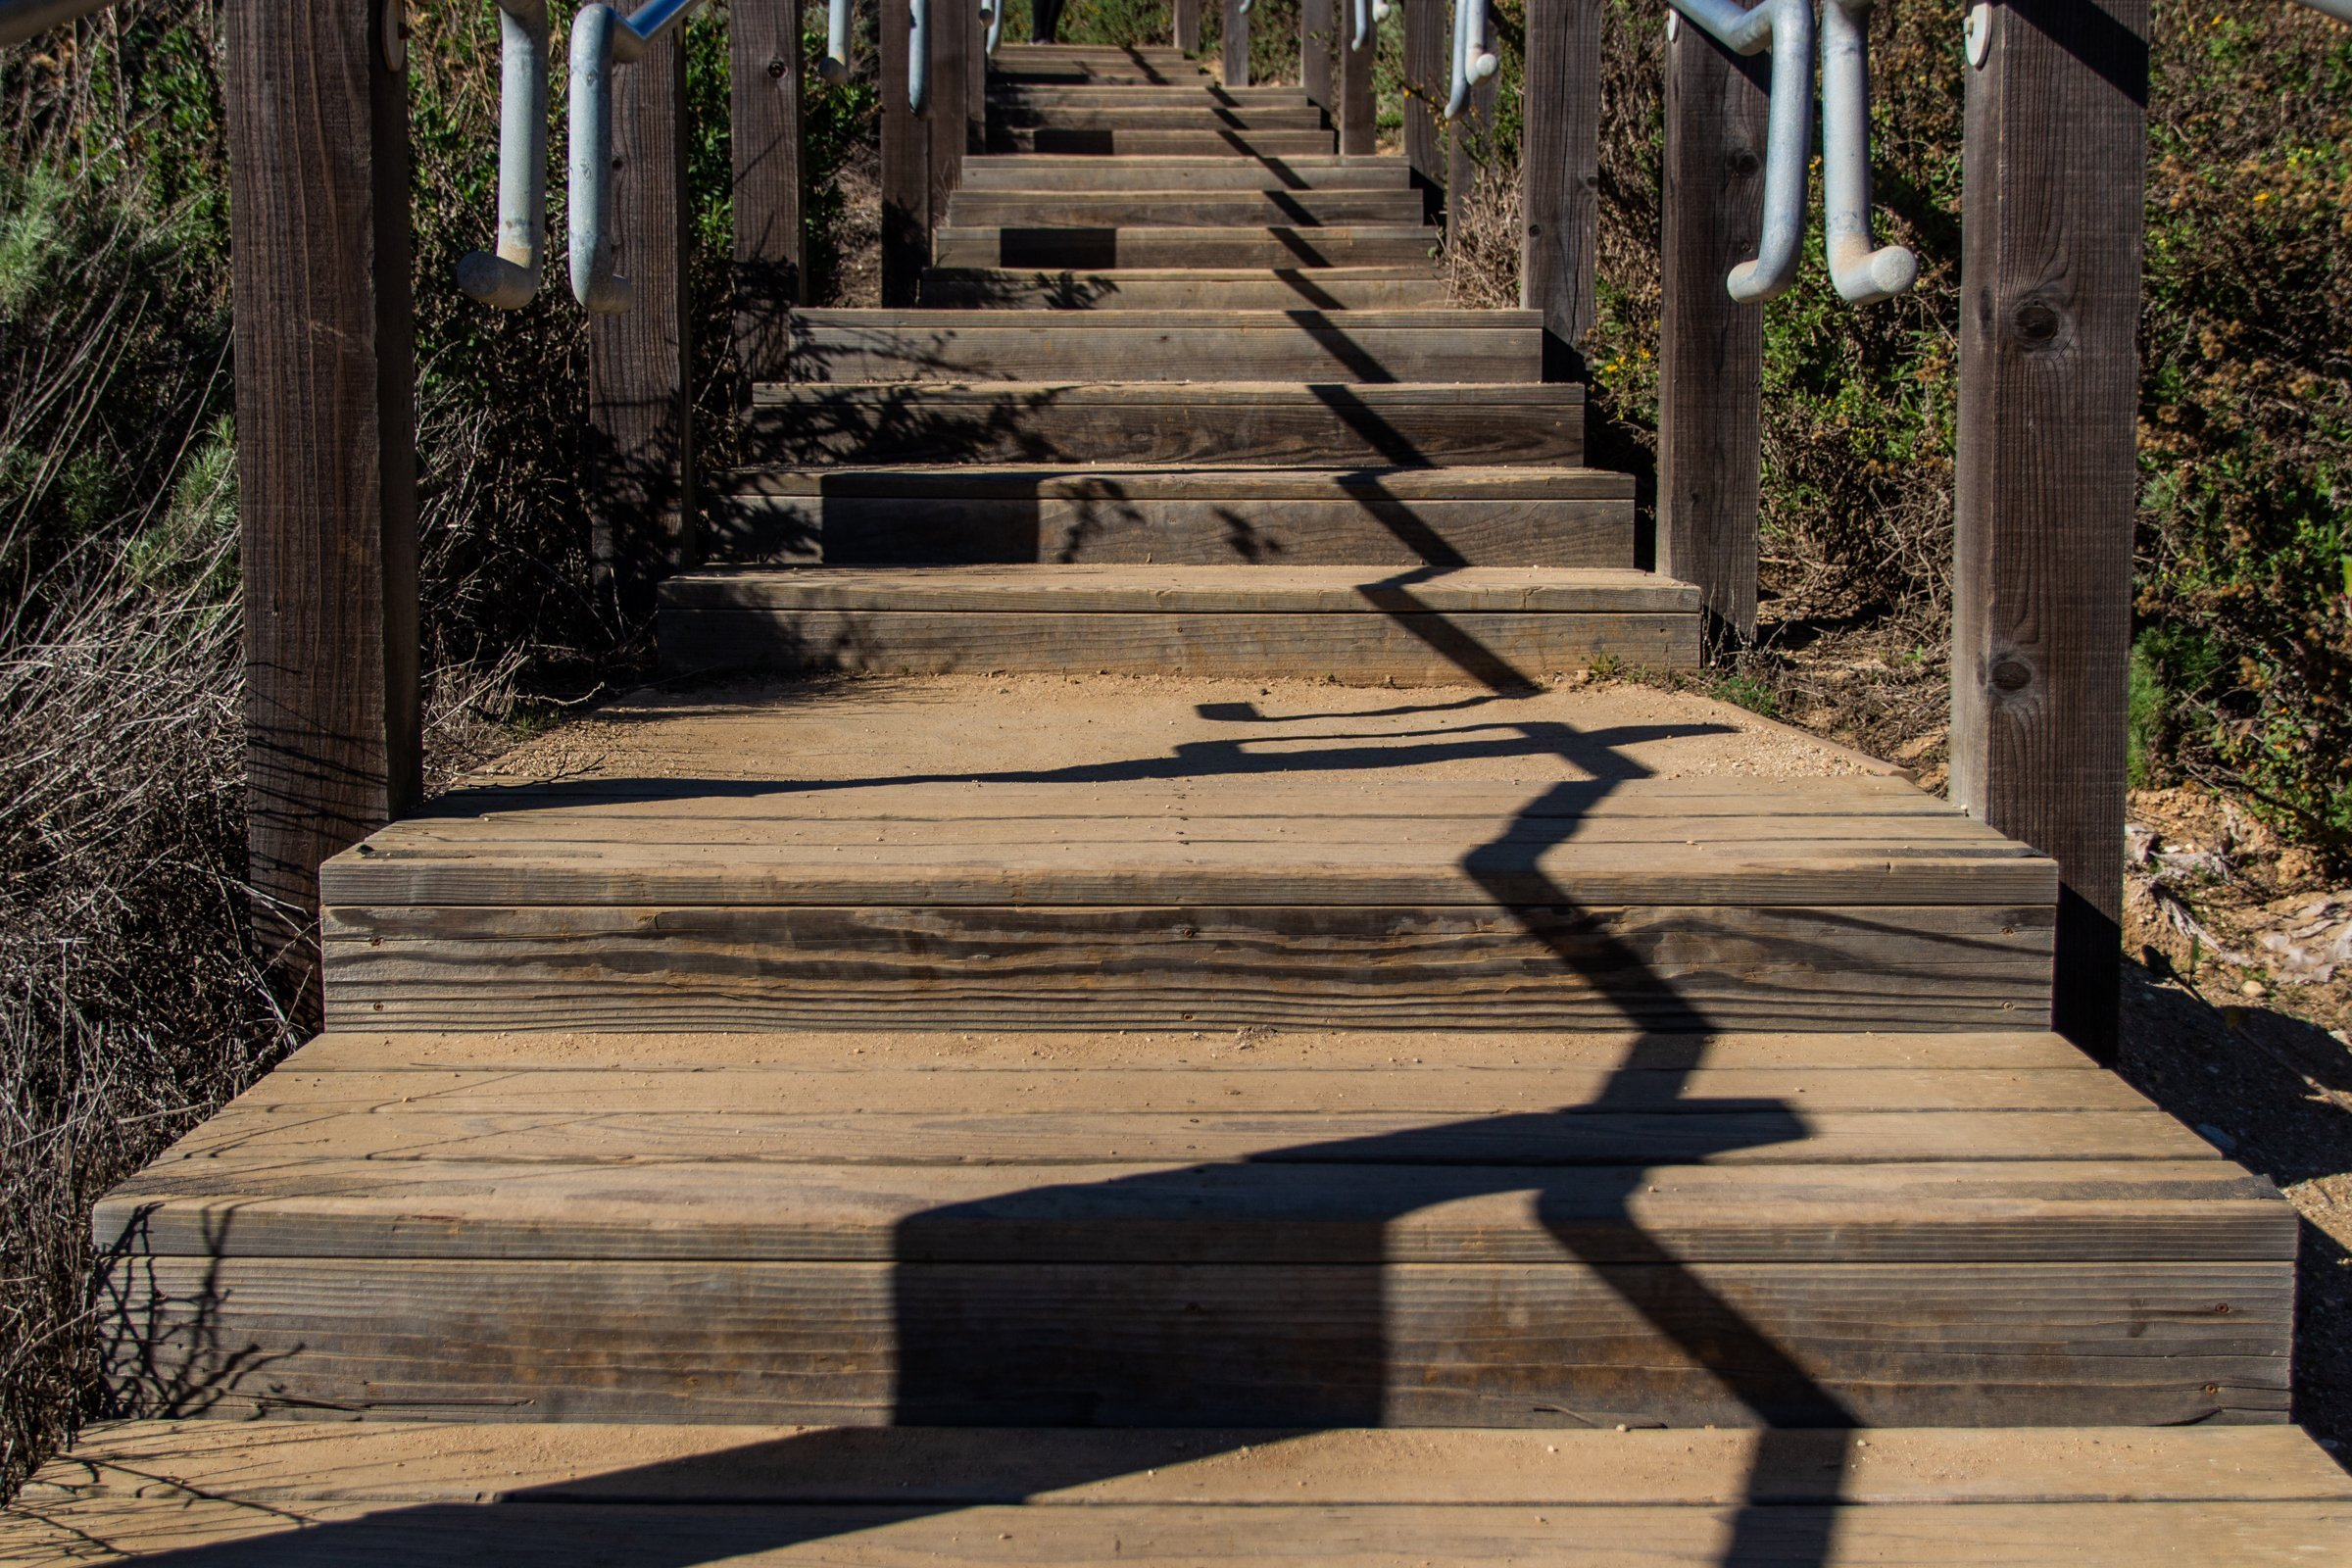 Wooden Outdoor Stairs Steps